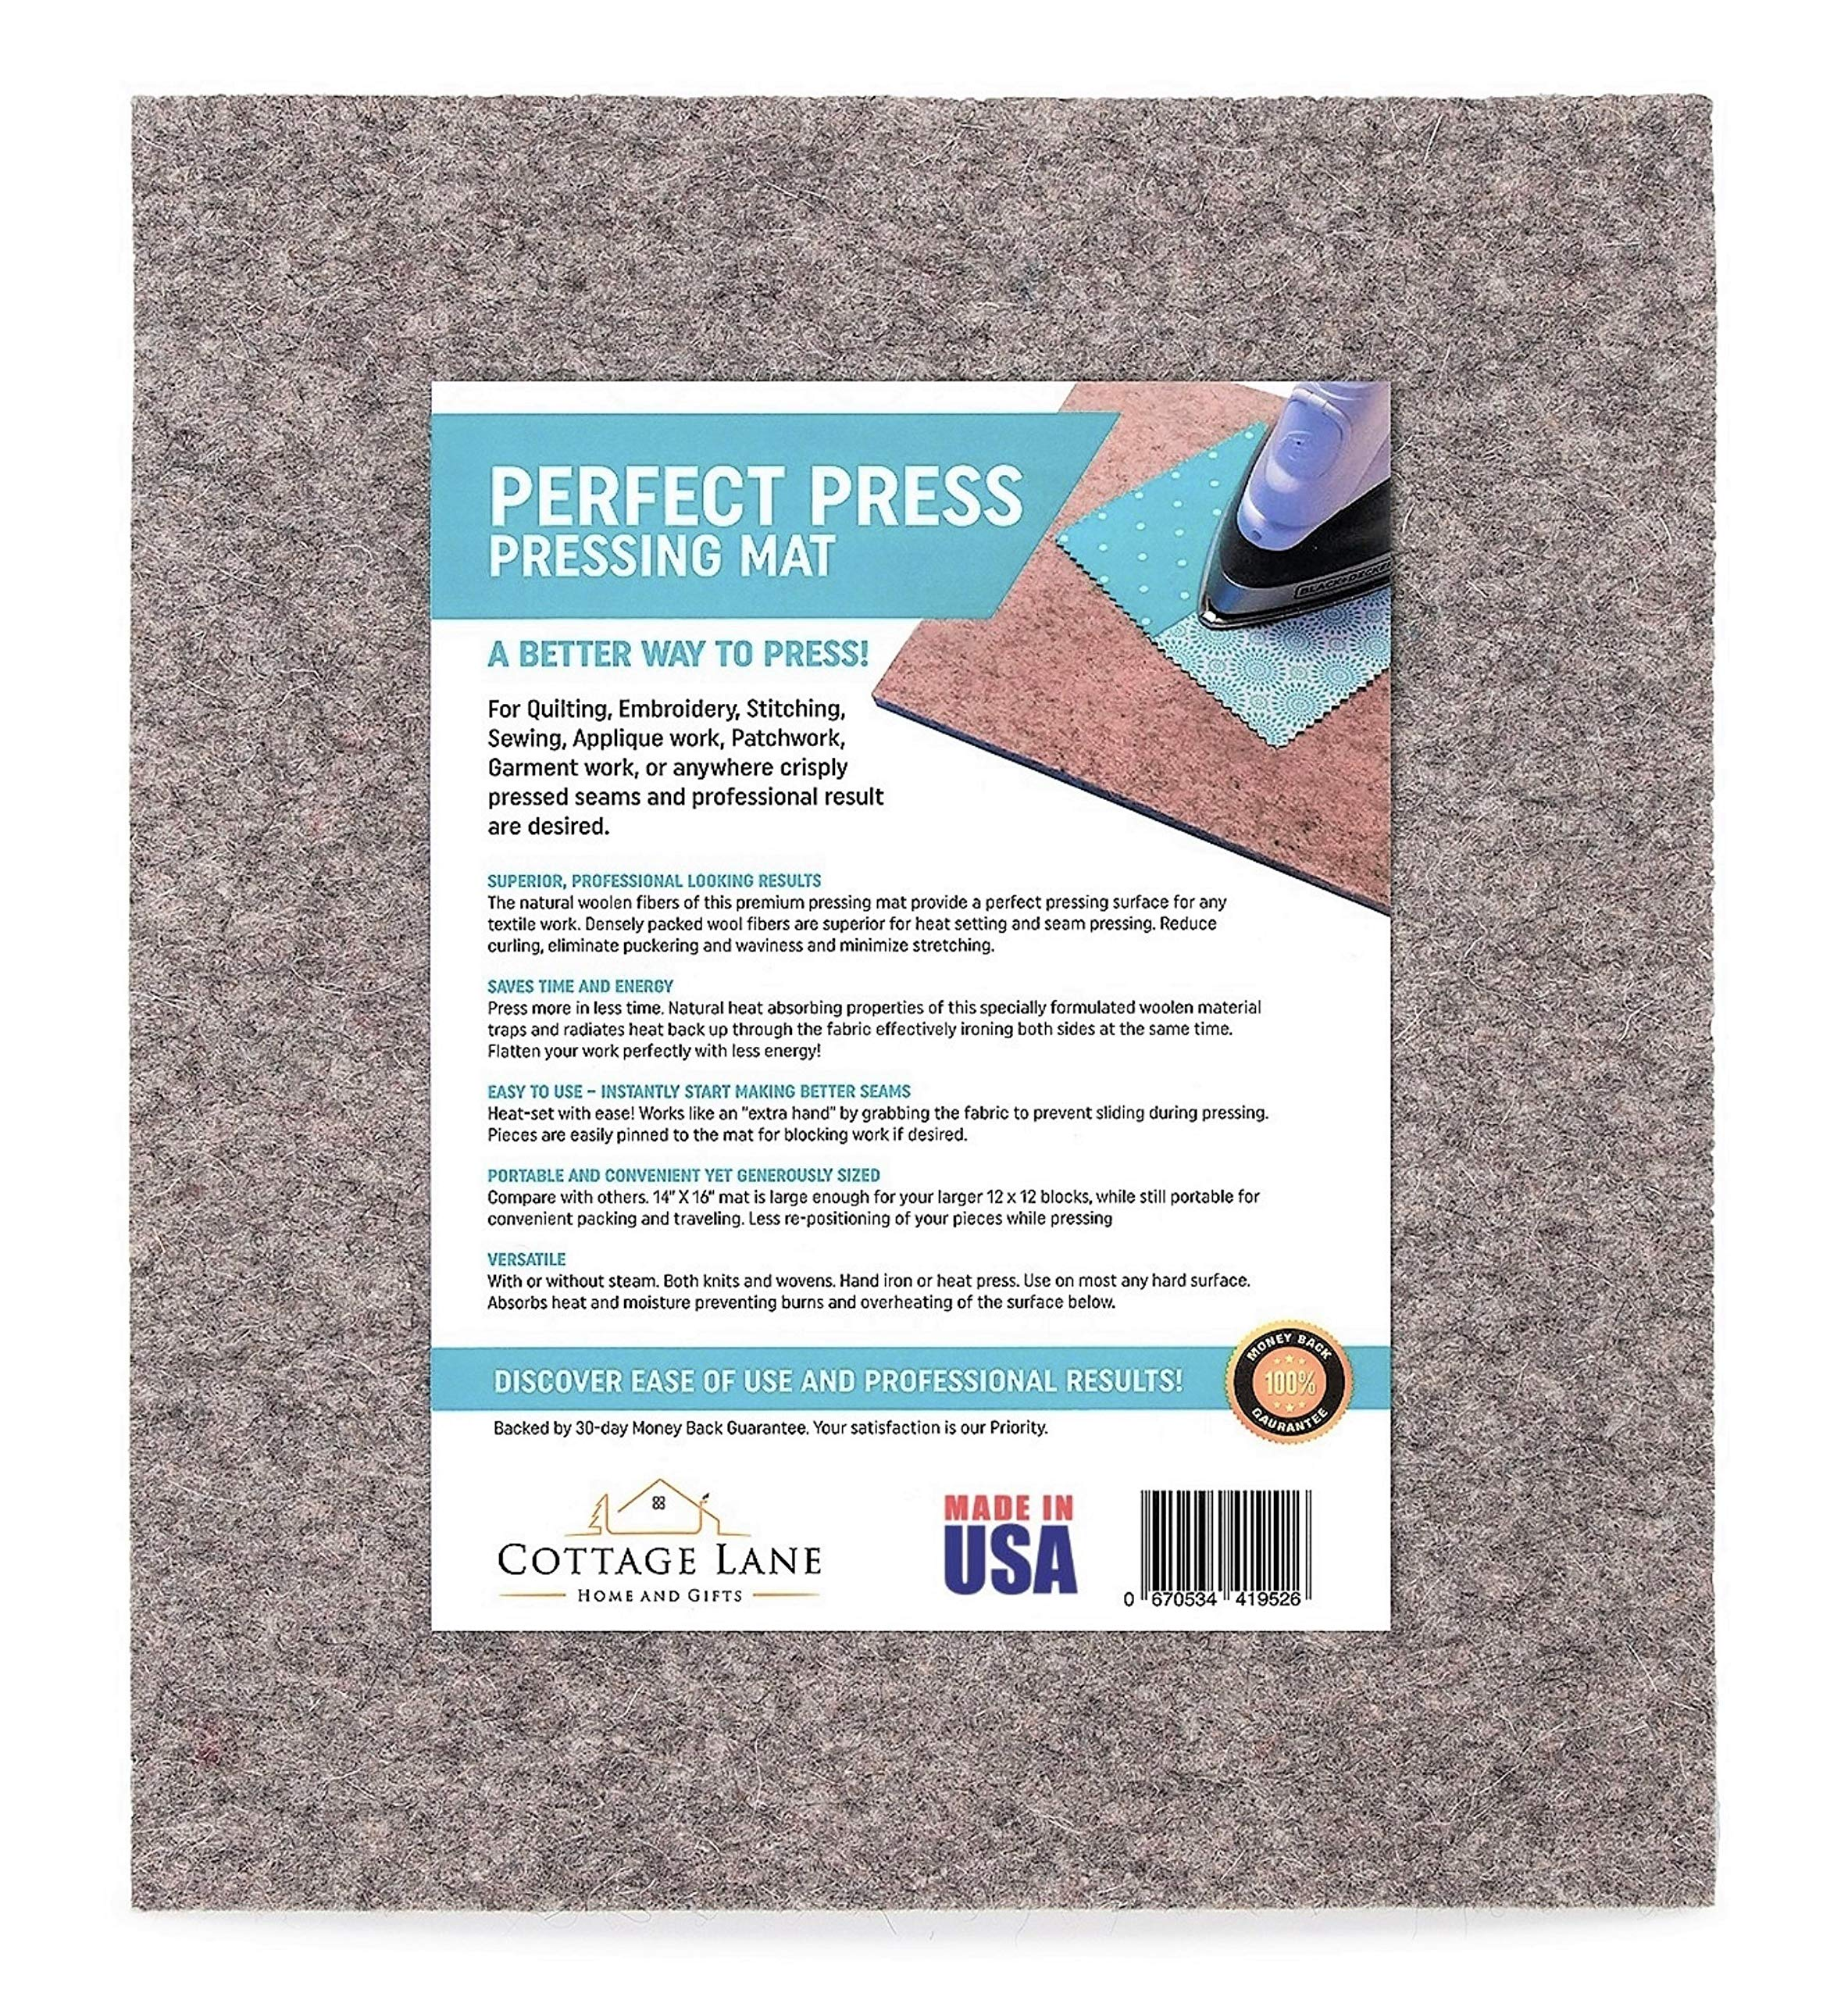 Portable Plus Perfect for All Ironing Station 18 X 14 Wool Pressing Mat for Quilting 100/% New Zealand Wool Ironing Pad